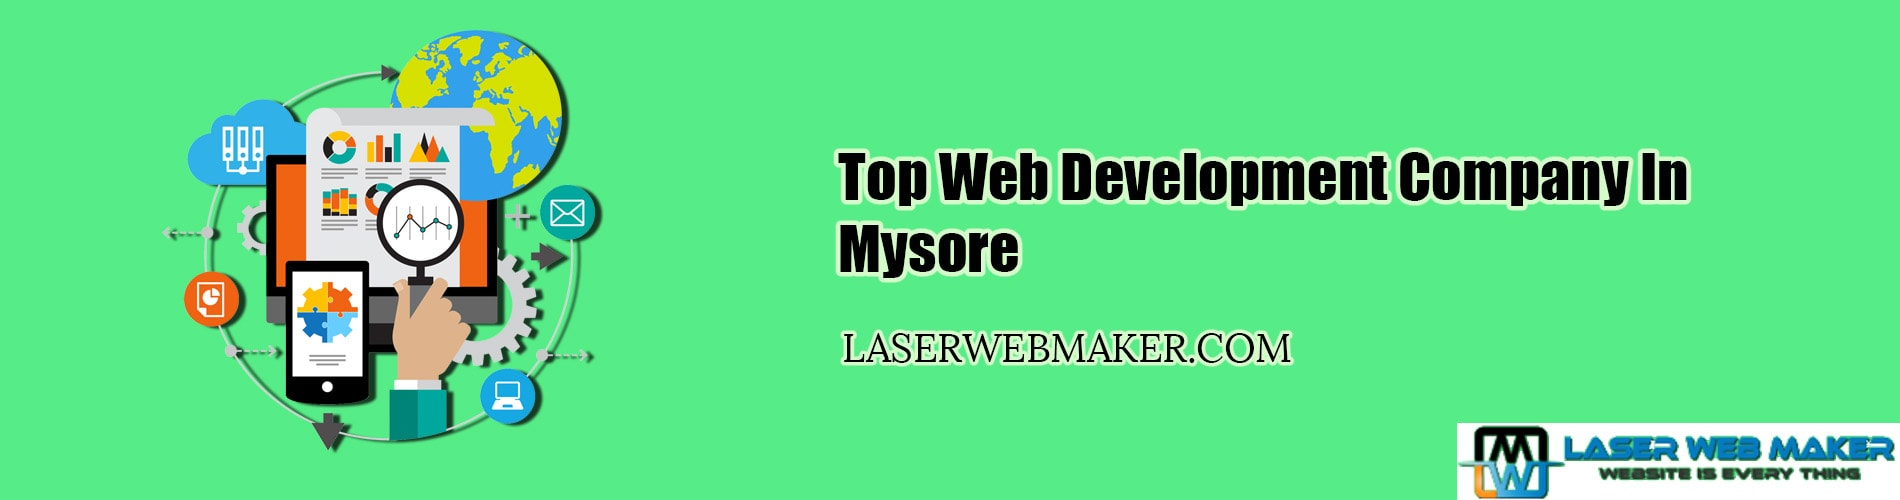 Top Web Development Company In Mysore